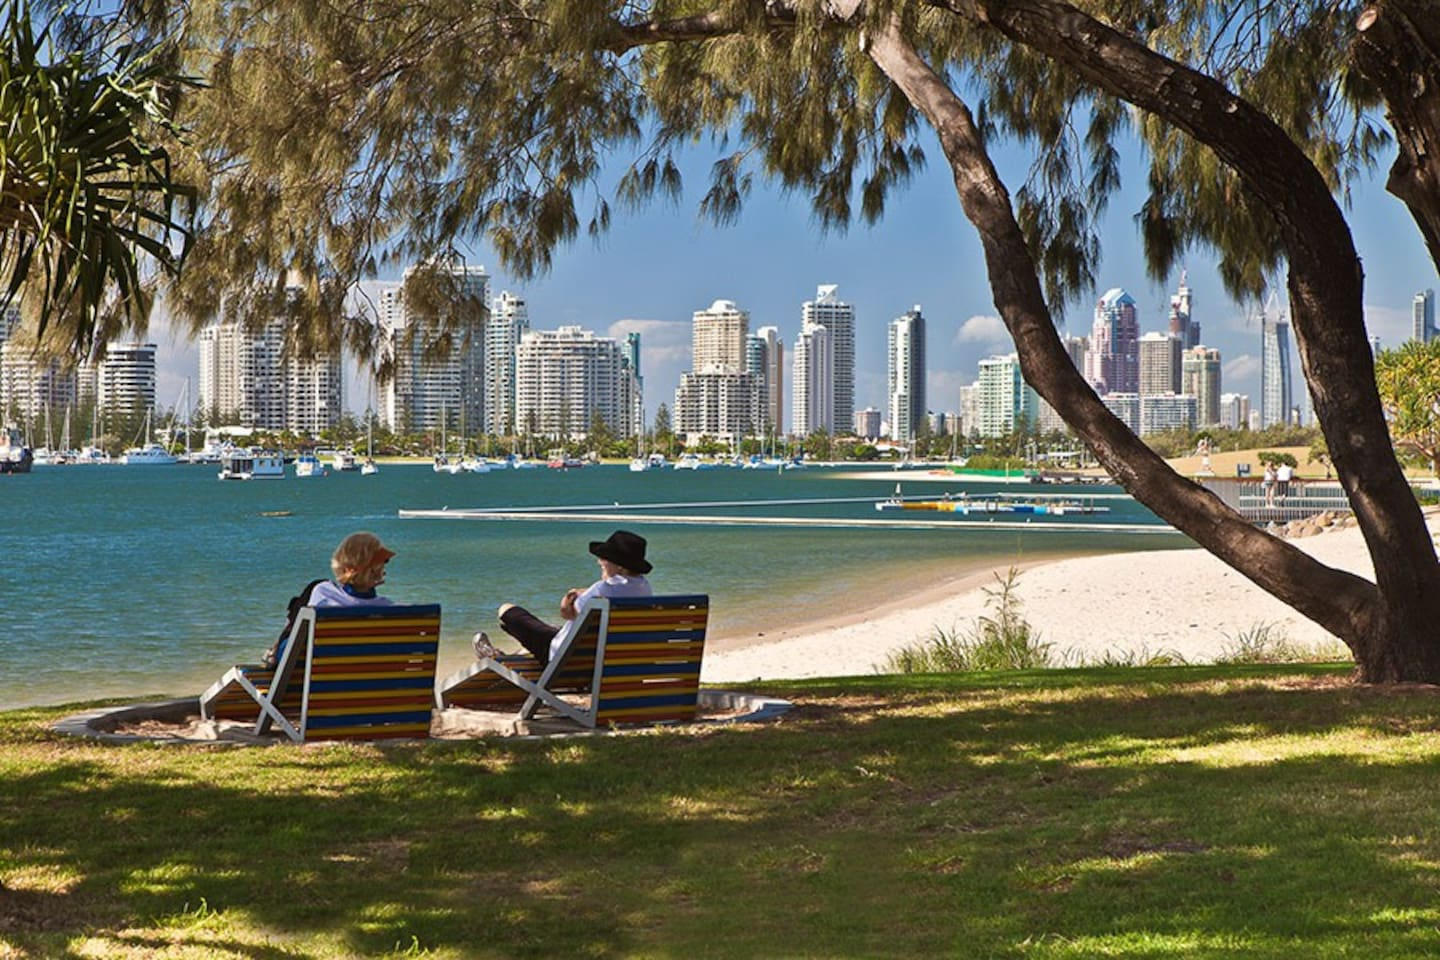 Broadwater Parklands is a stroll, or a short tram ride away and offers a range of activities and gorgeous views of the city skyline